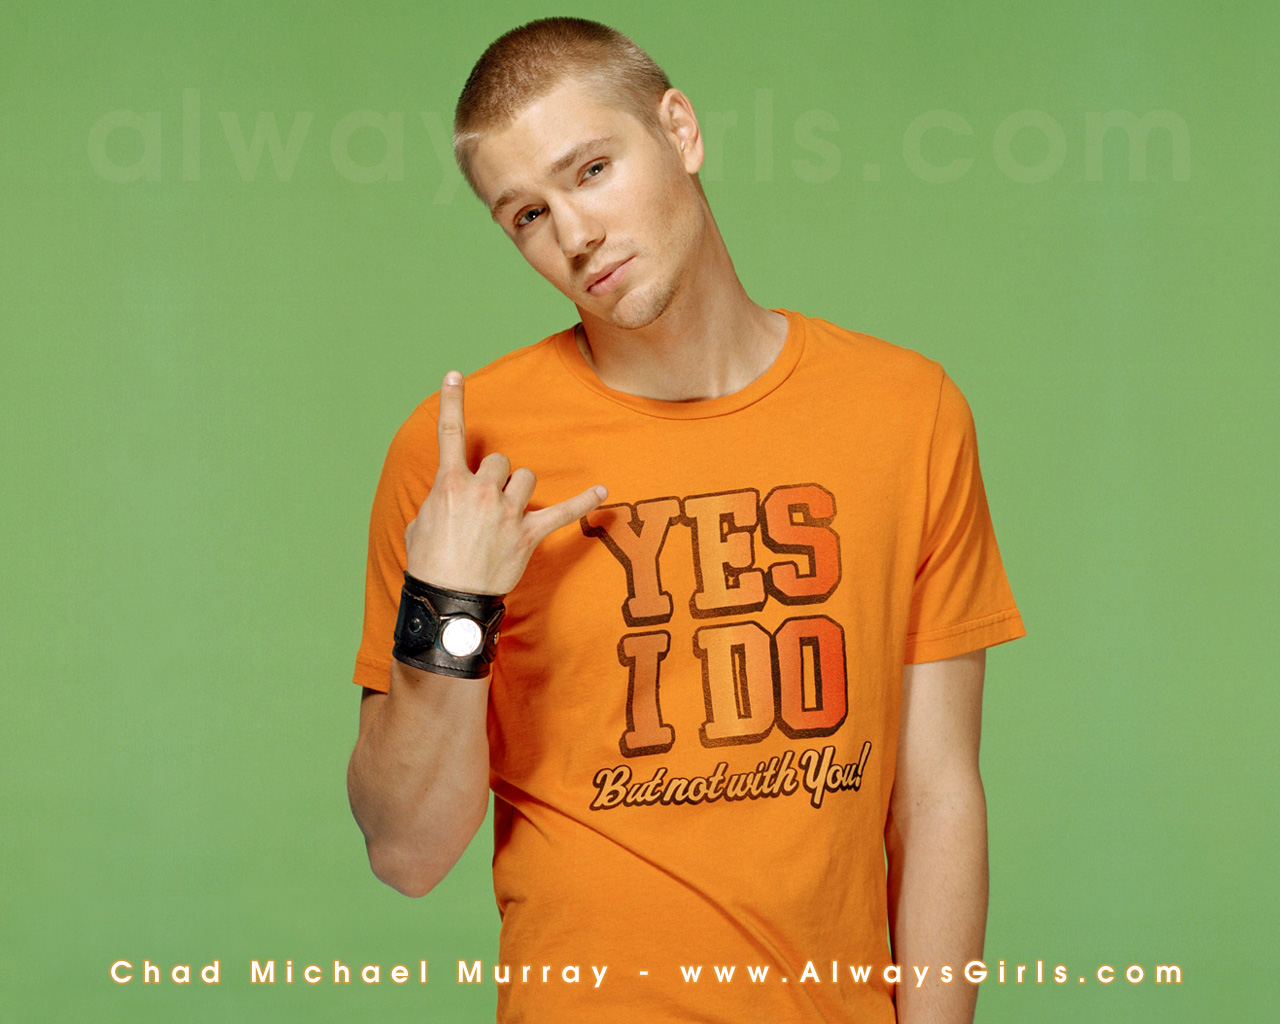 Chad - Chad Michael Murray 1280x1024